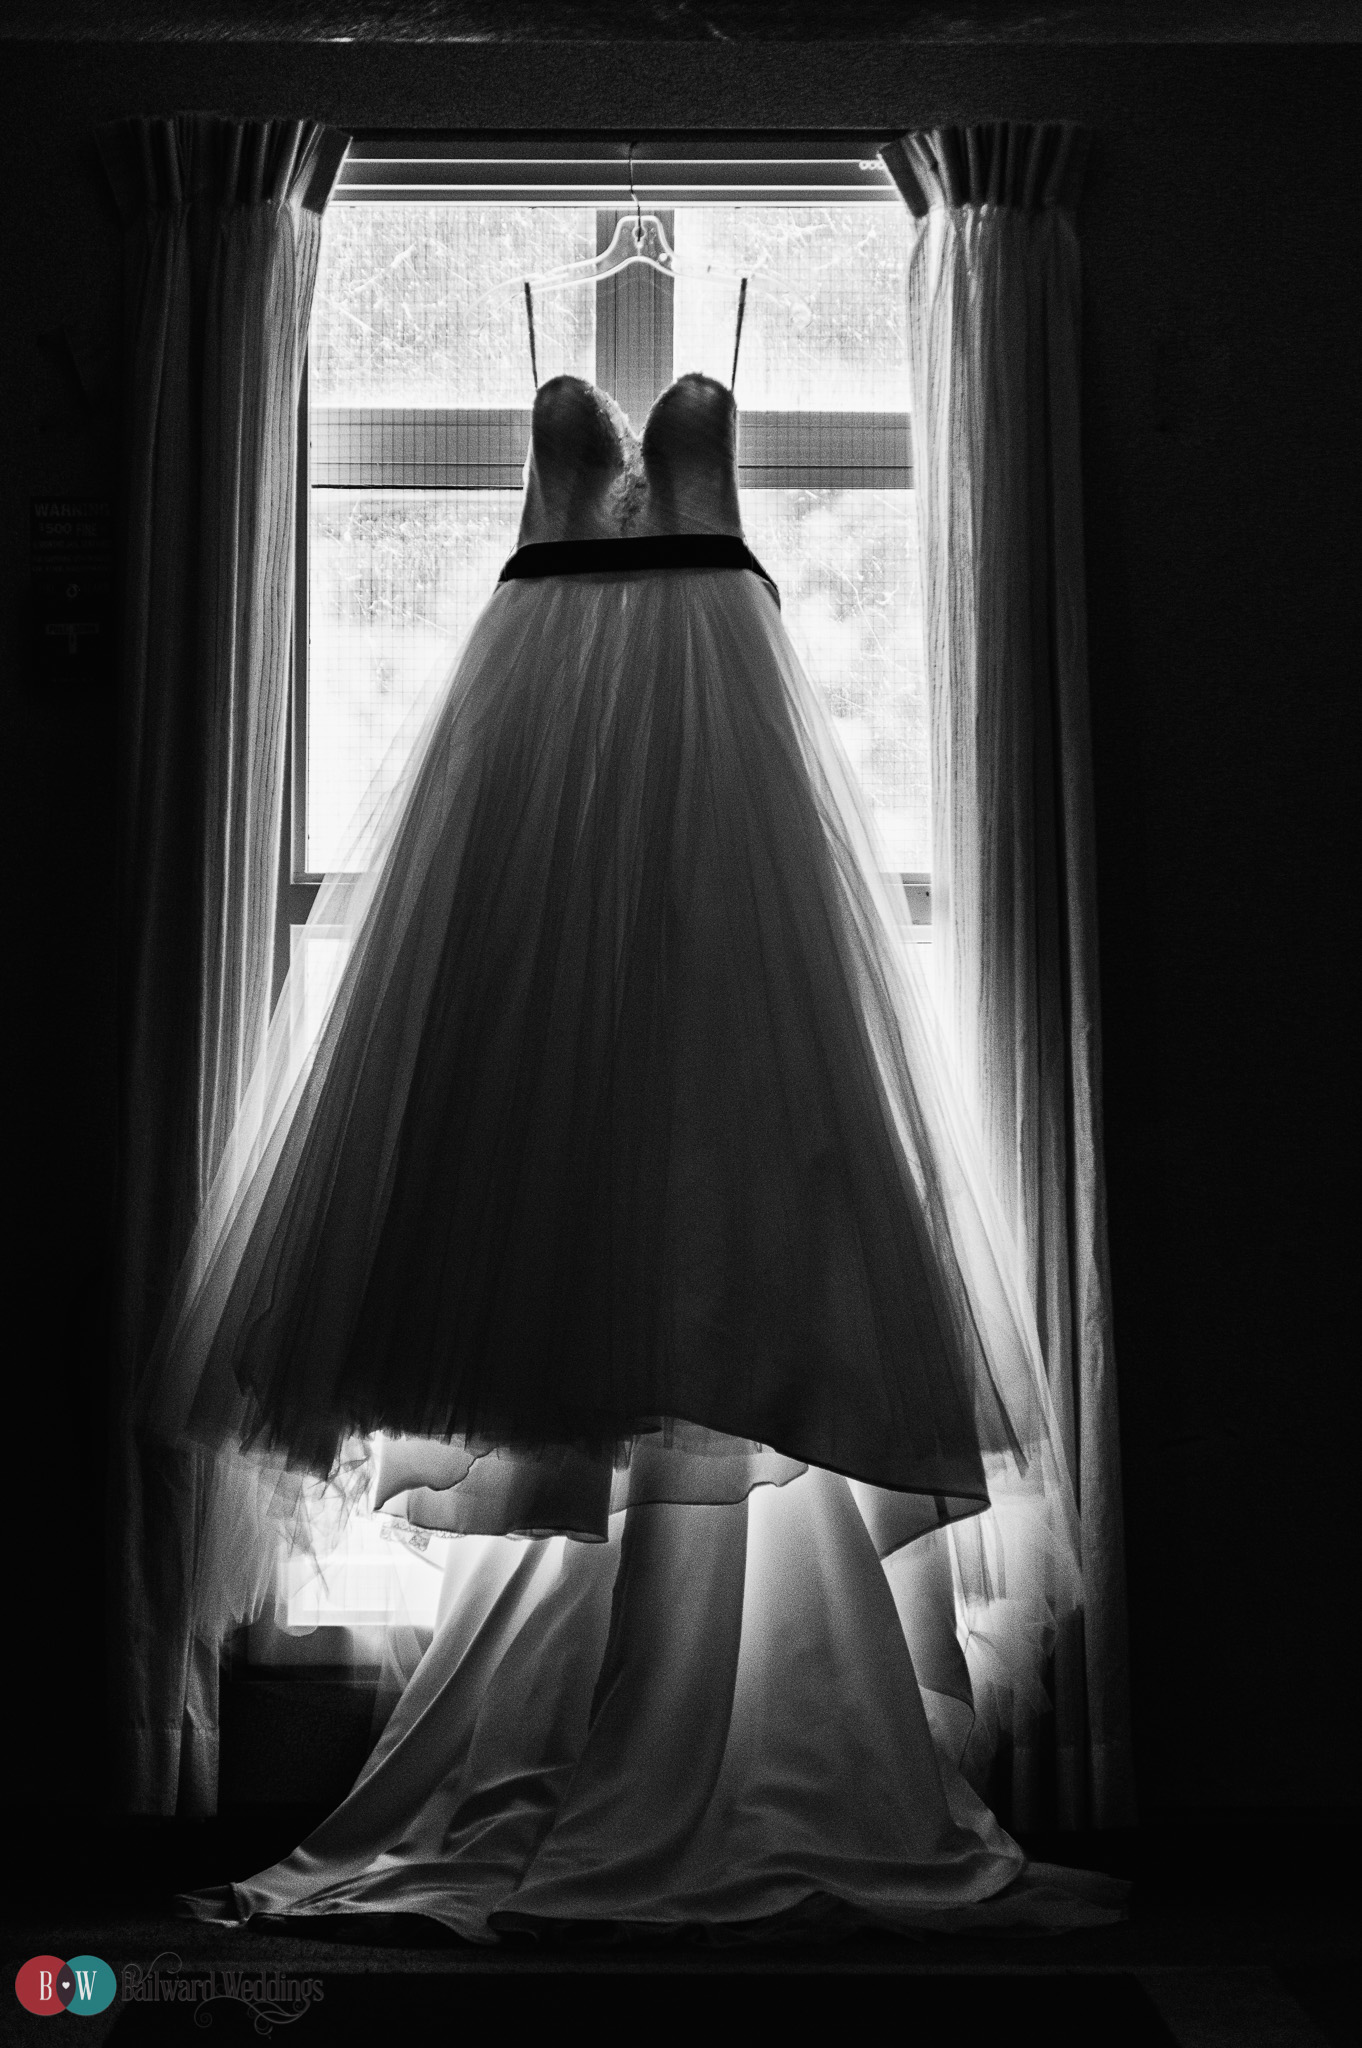 Wedding dress in front of window in Harrison Hot Springs in Black and White